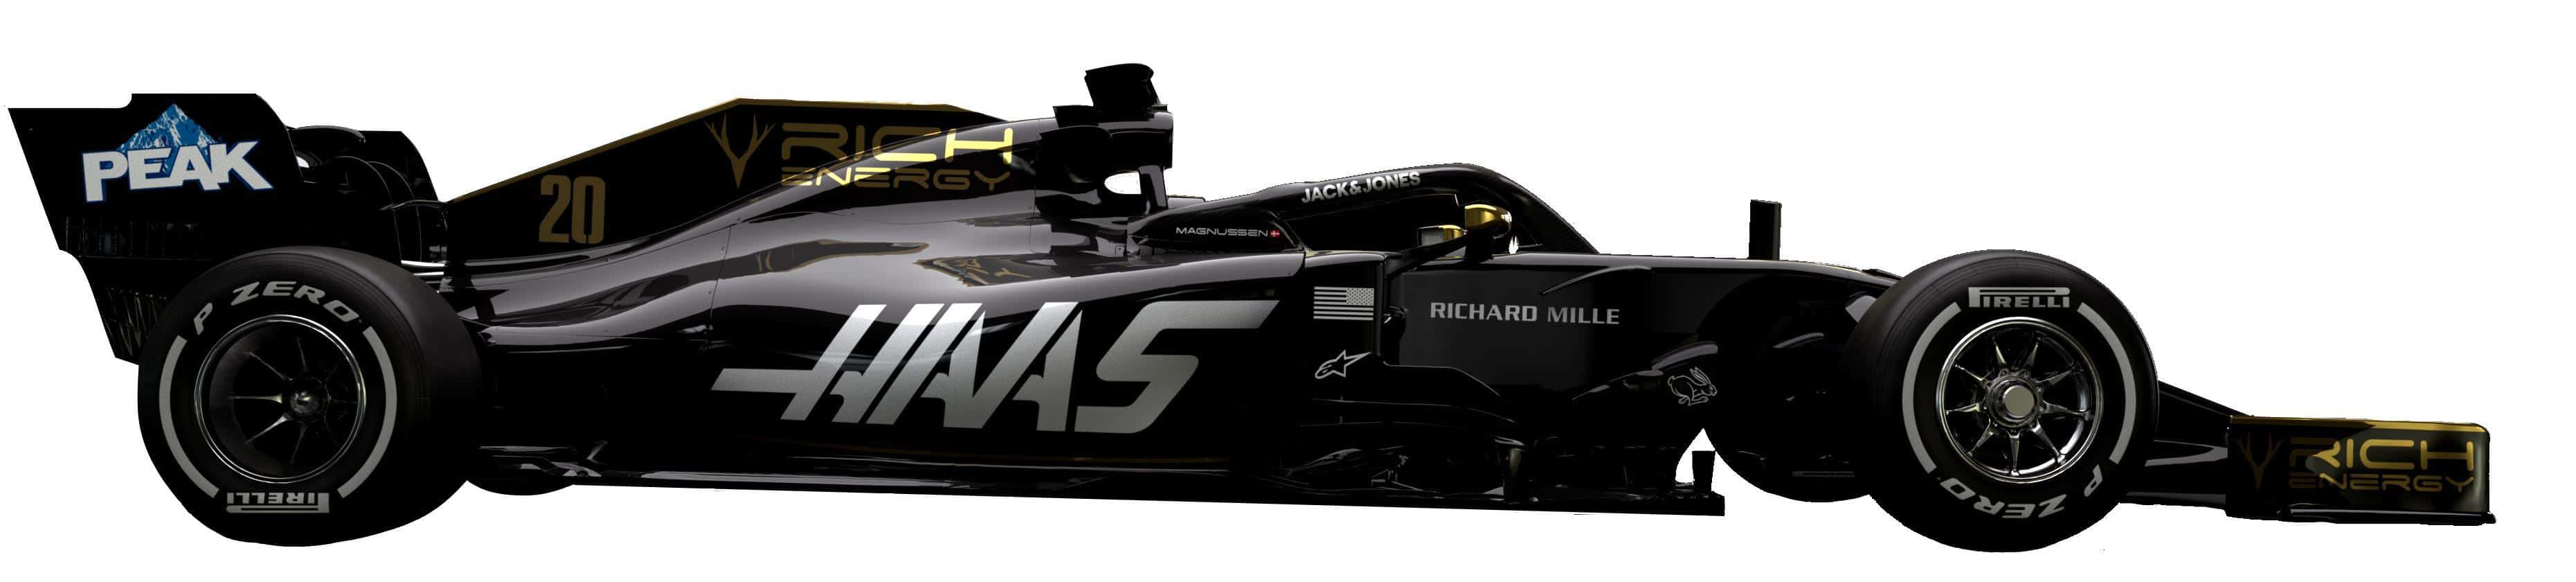 2019 Haas VF-19 side no background